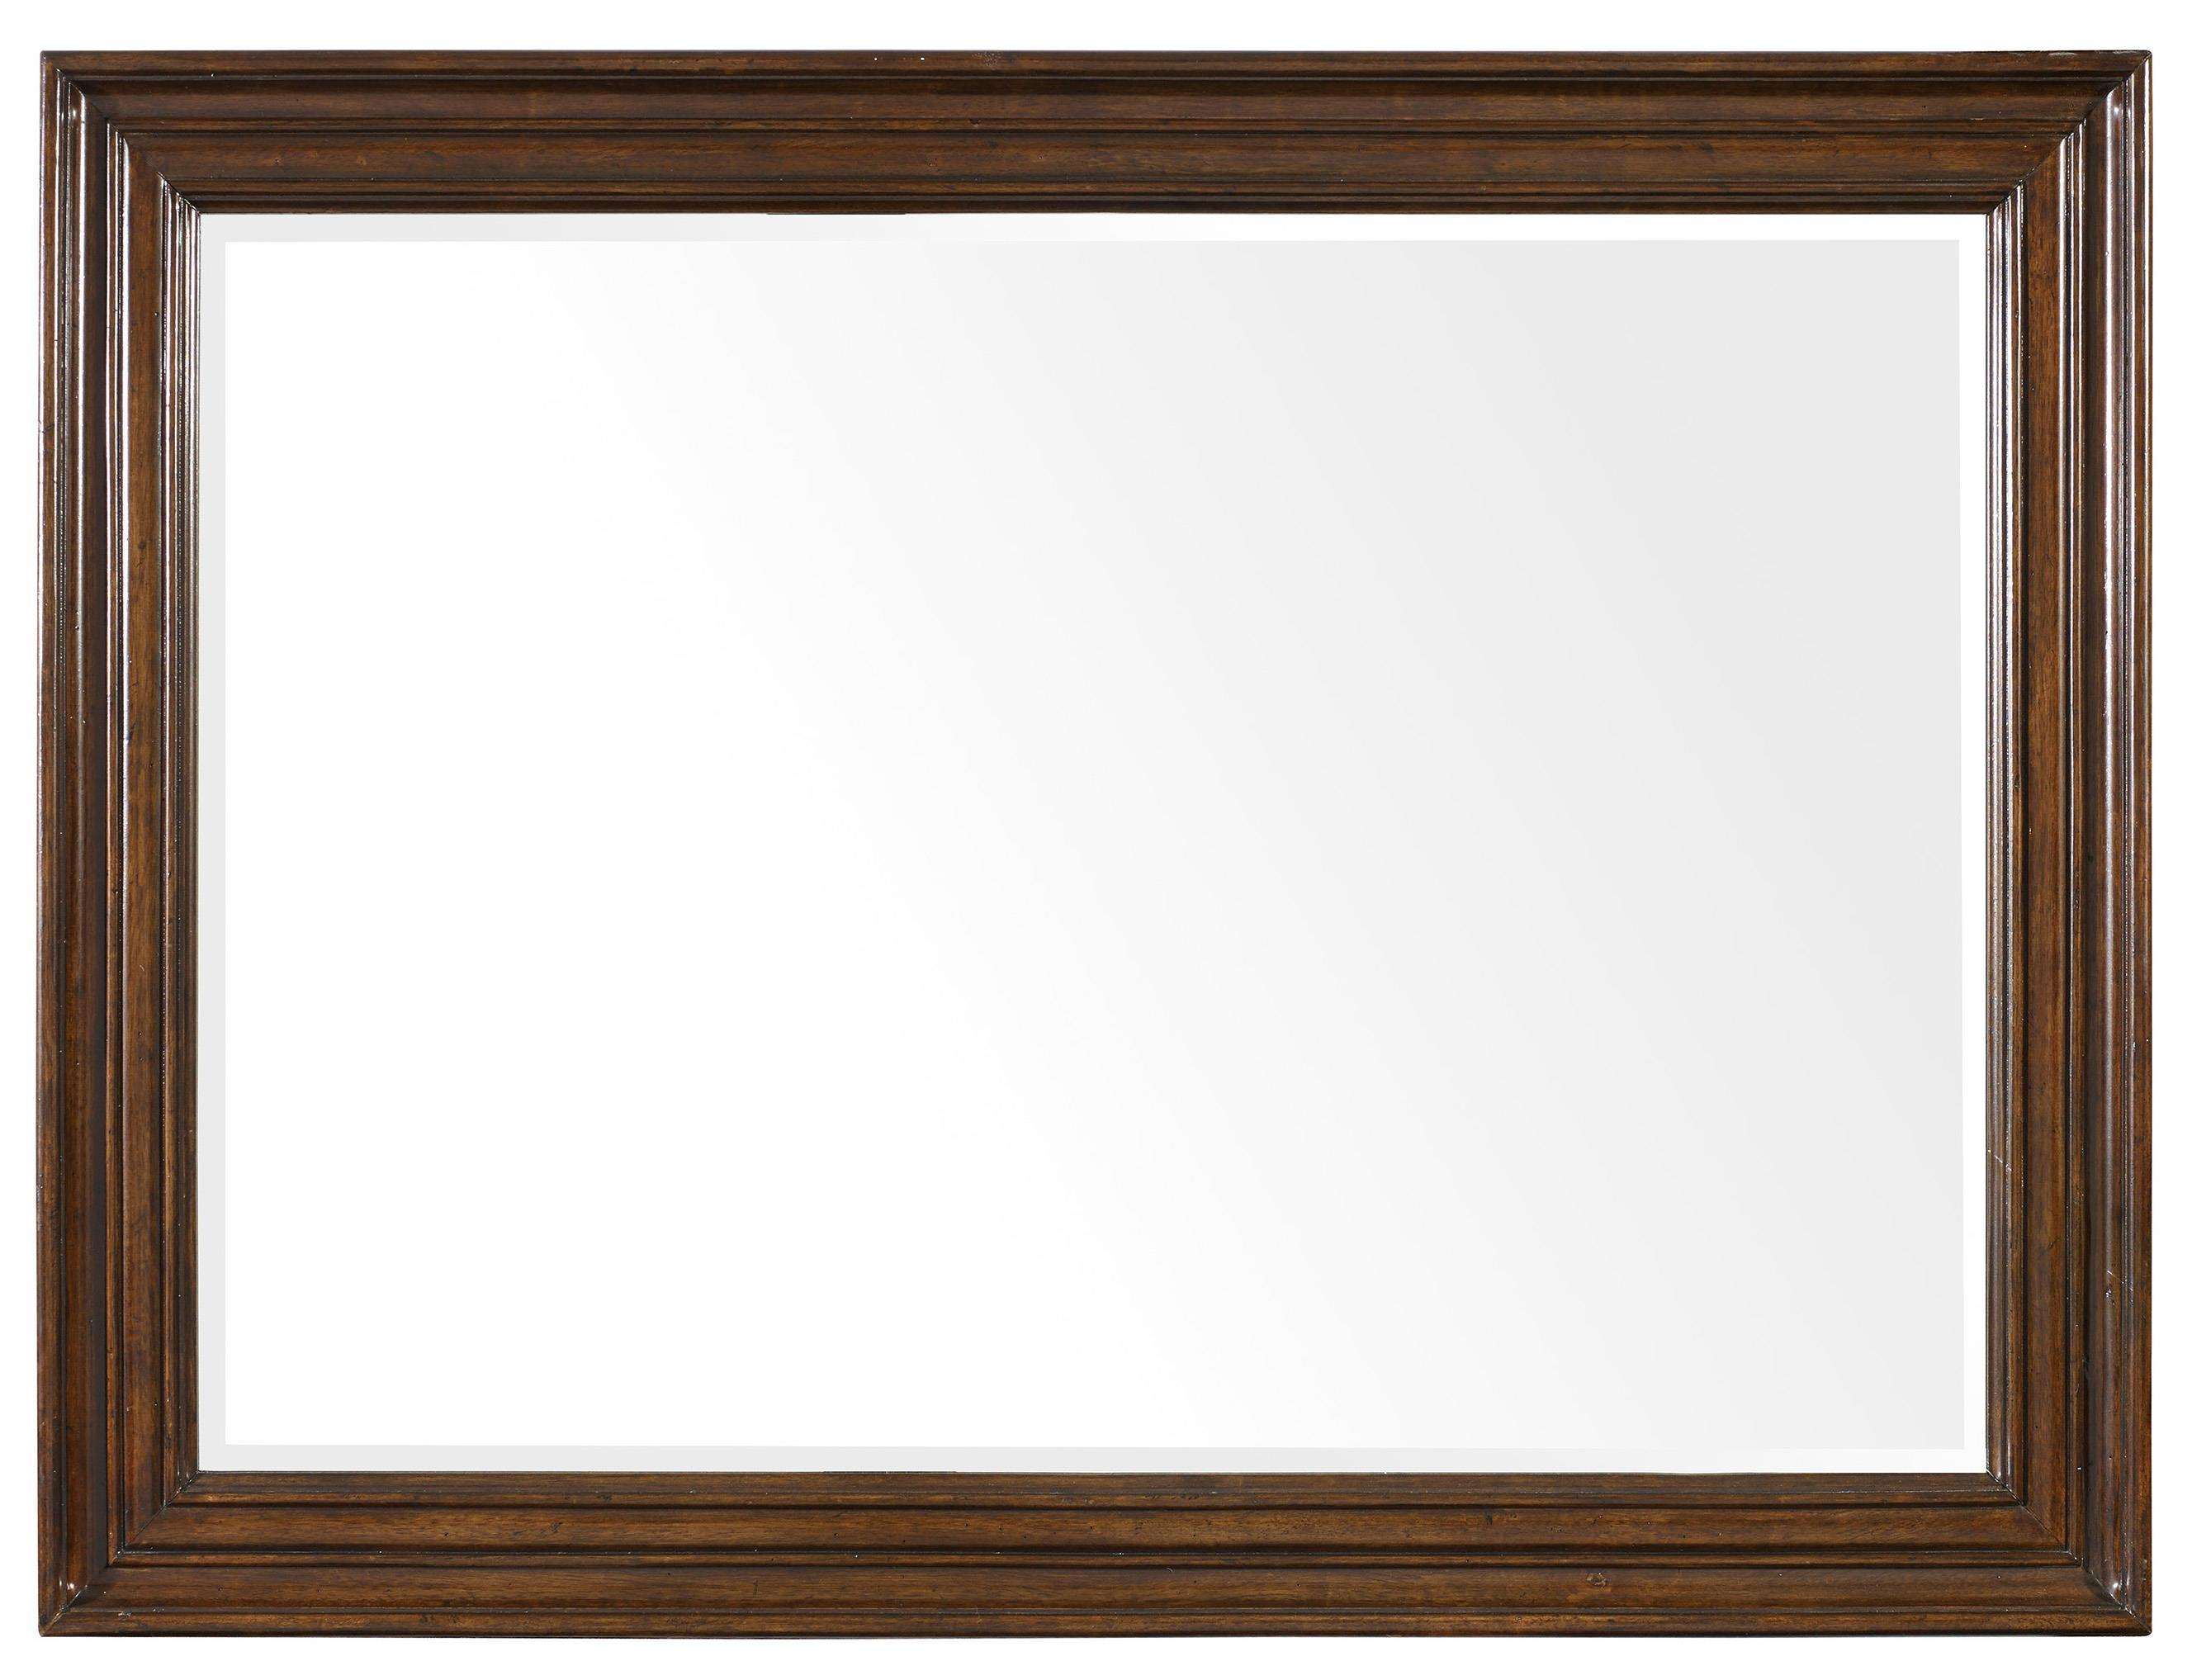 Hooker Furniture Leesburg Landscape Mirror - Item Number: 5381-90008